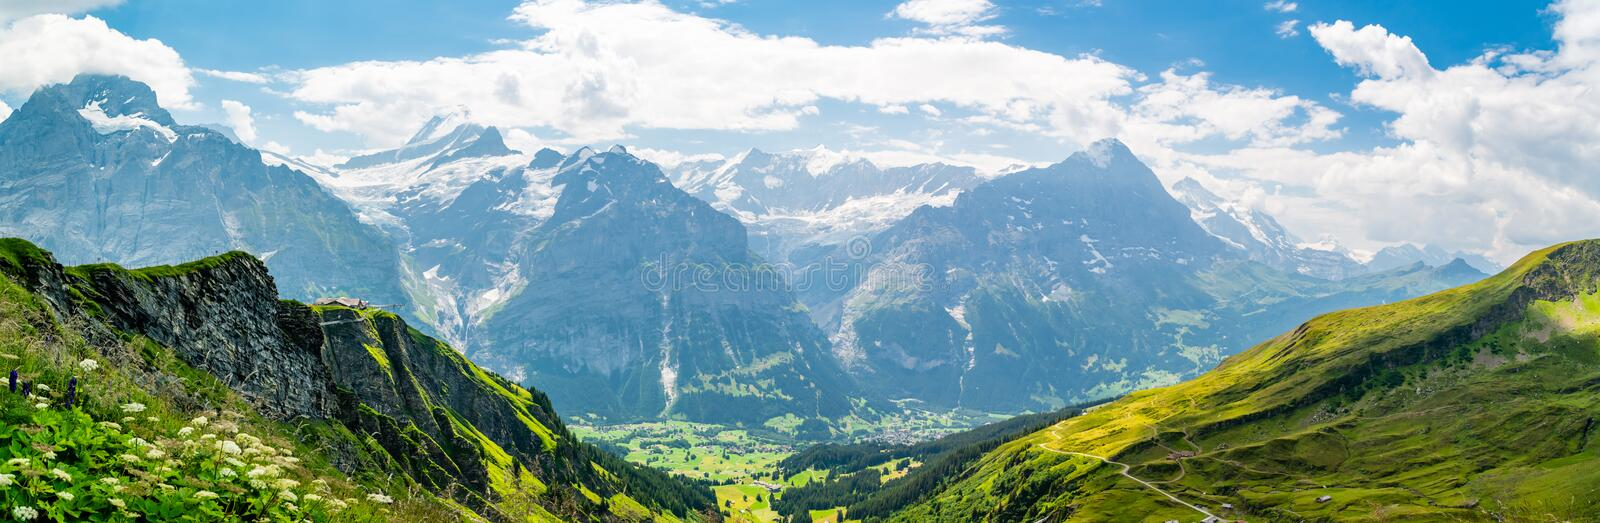 Beautiful panoramic alpine scenery in Swiss Alps near Grindelwald. First royalty free stock image